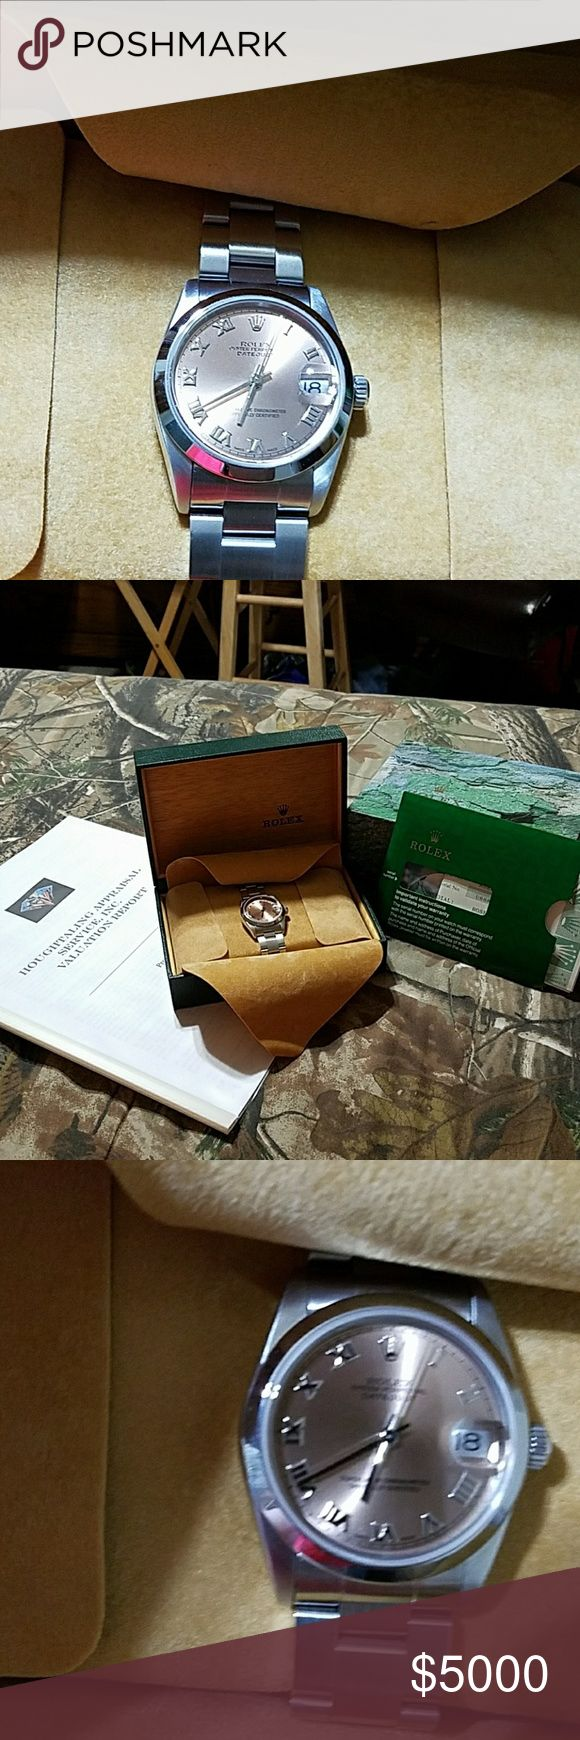 1998 ROLEX date adjust 31mm AUTHENTIC 1998 ROLEX WITH Rose colored face and Roman numerals. Midsize 31mm. Excellent condition. Stainless steel band. Has a scratch on band buckle. Original box and papers along with recent insurance appraisal. AUTHENTIC ROLEX. Price has some room for negotiations. FYI- Up until around 2000 or later Rolex only offered a 1 year warranty on their watches. After then it went to 2 years, 3 and now 5 years. JUST COVERING THE BASICS. ALSO LISTED ON EBAY…